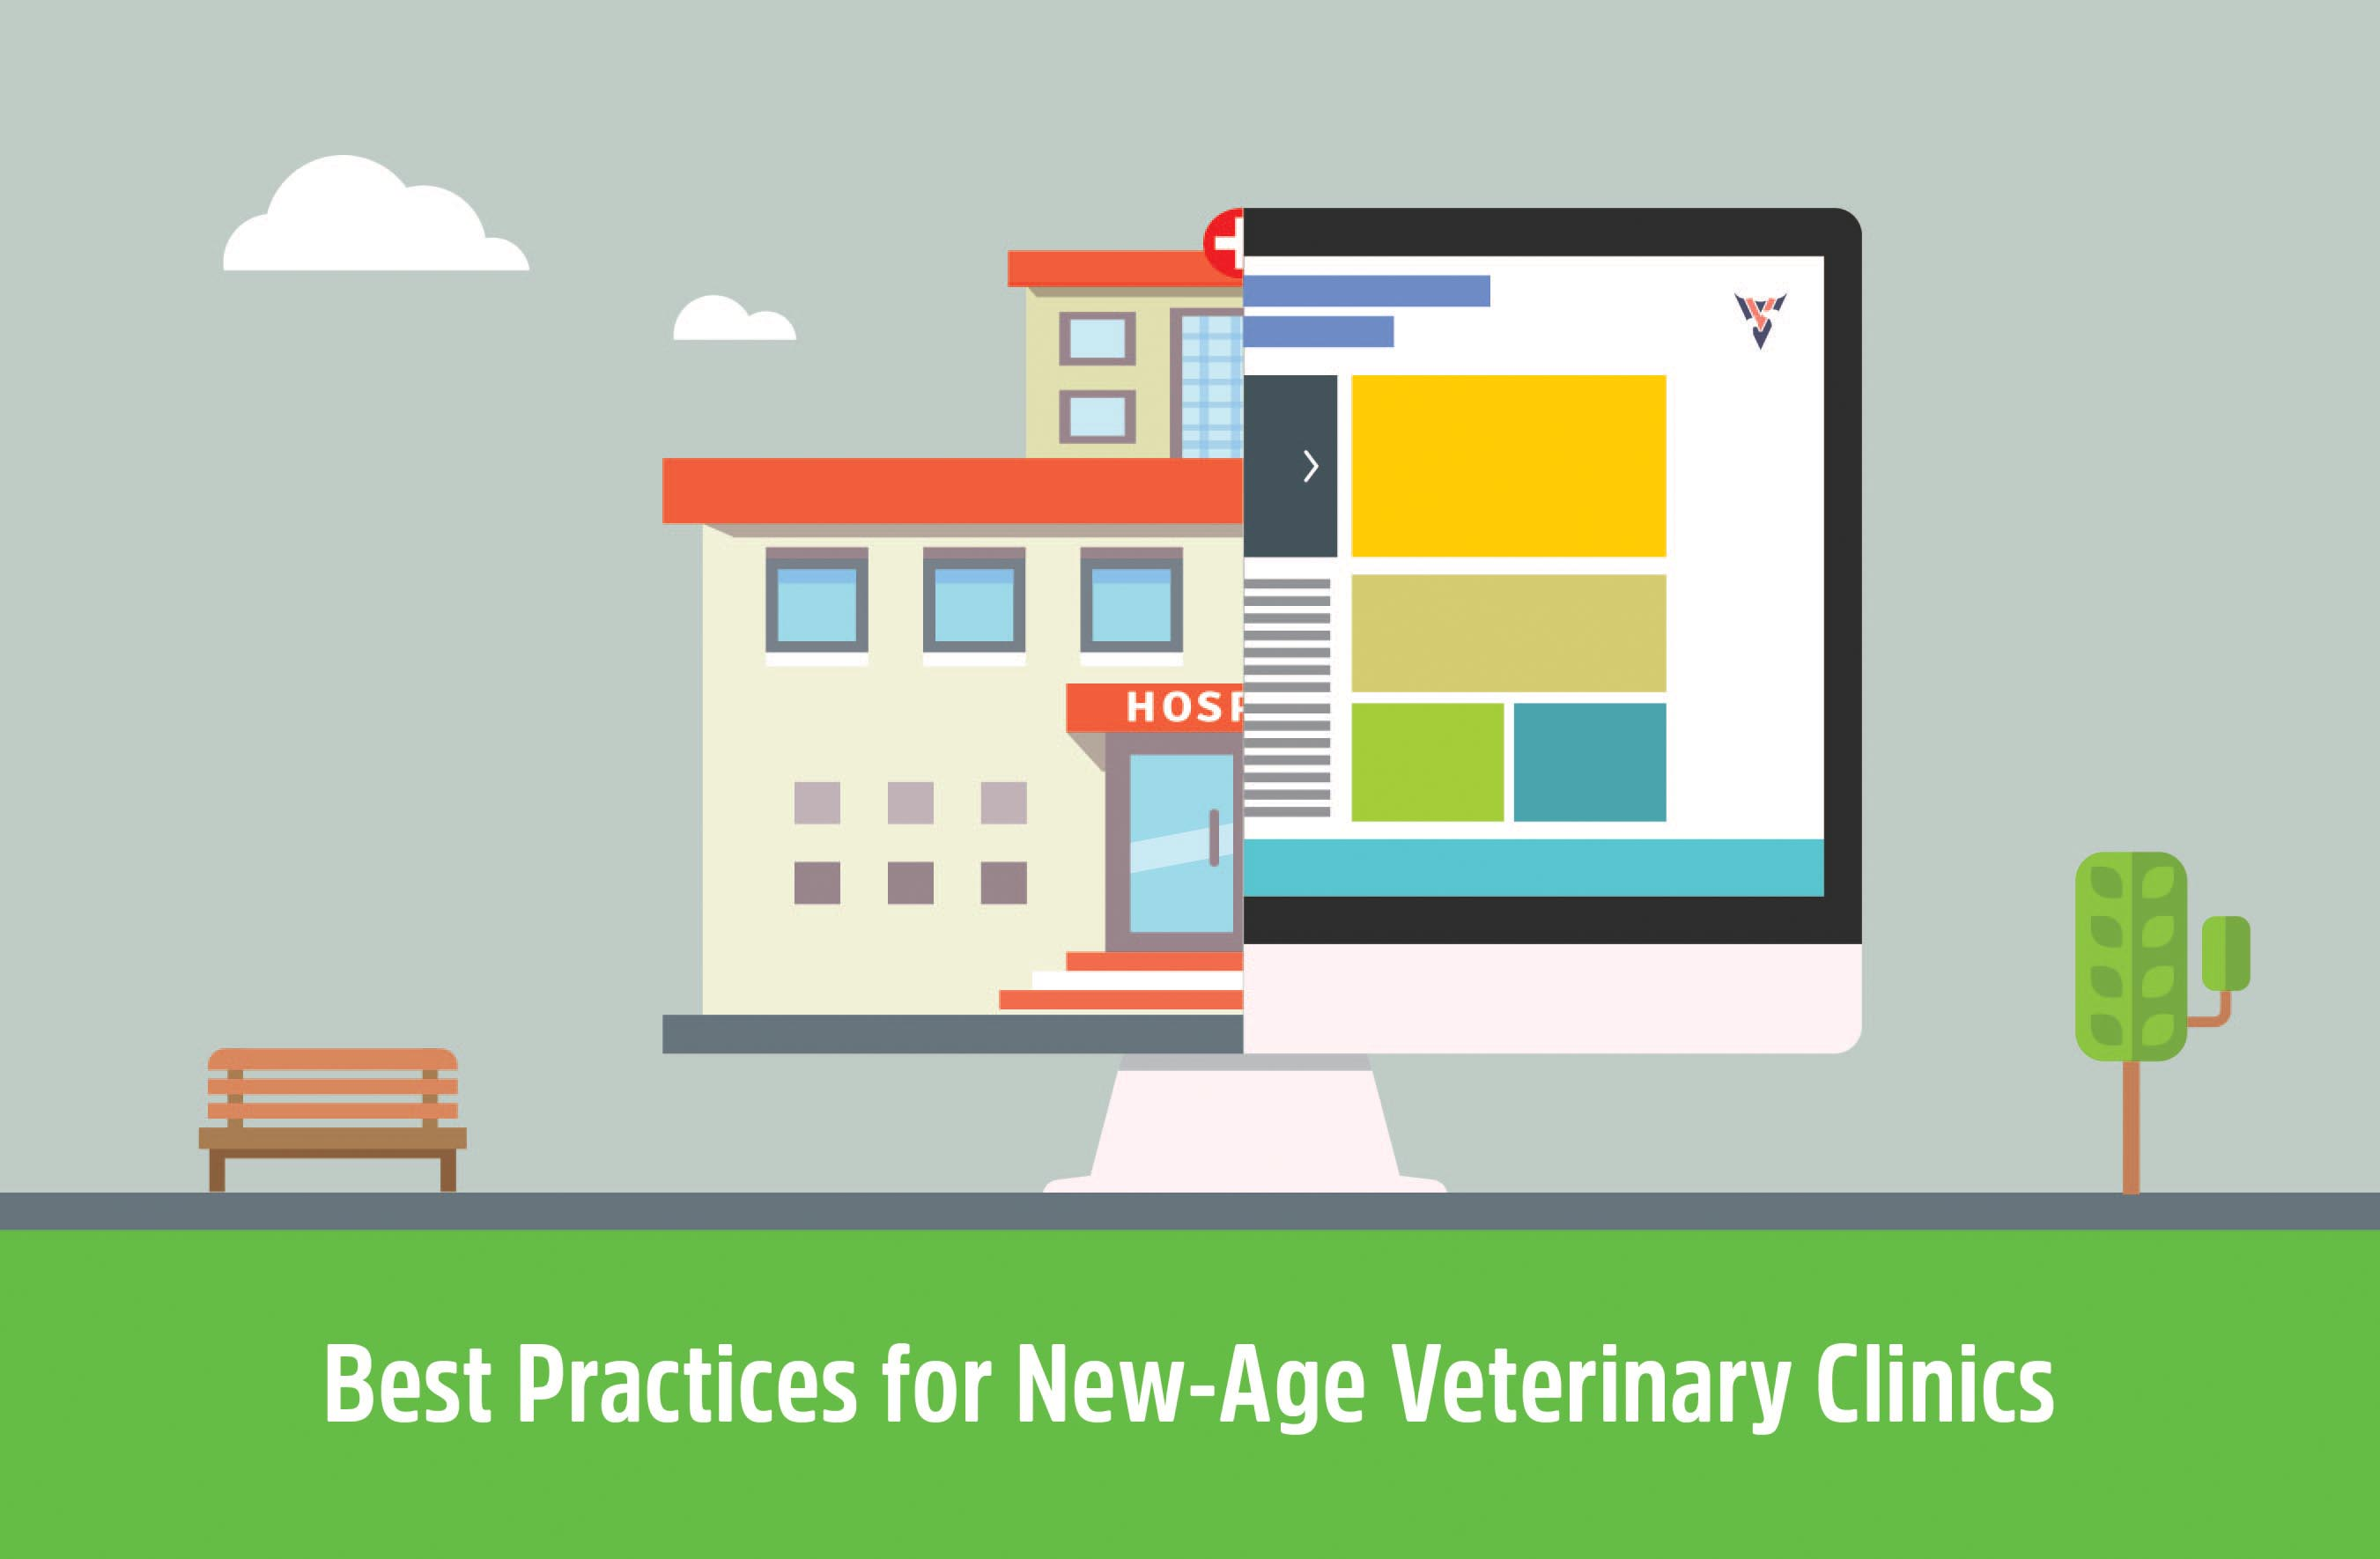 Best Practices For New-Age Veterinary Clinics, Hospitals, And Animal Care Centers